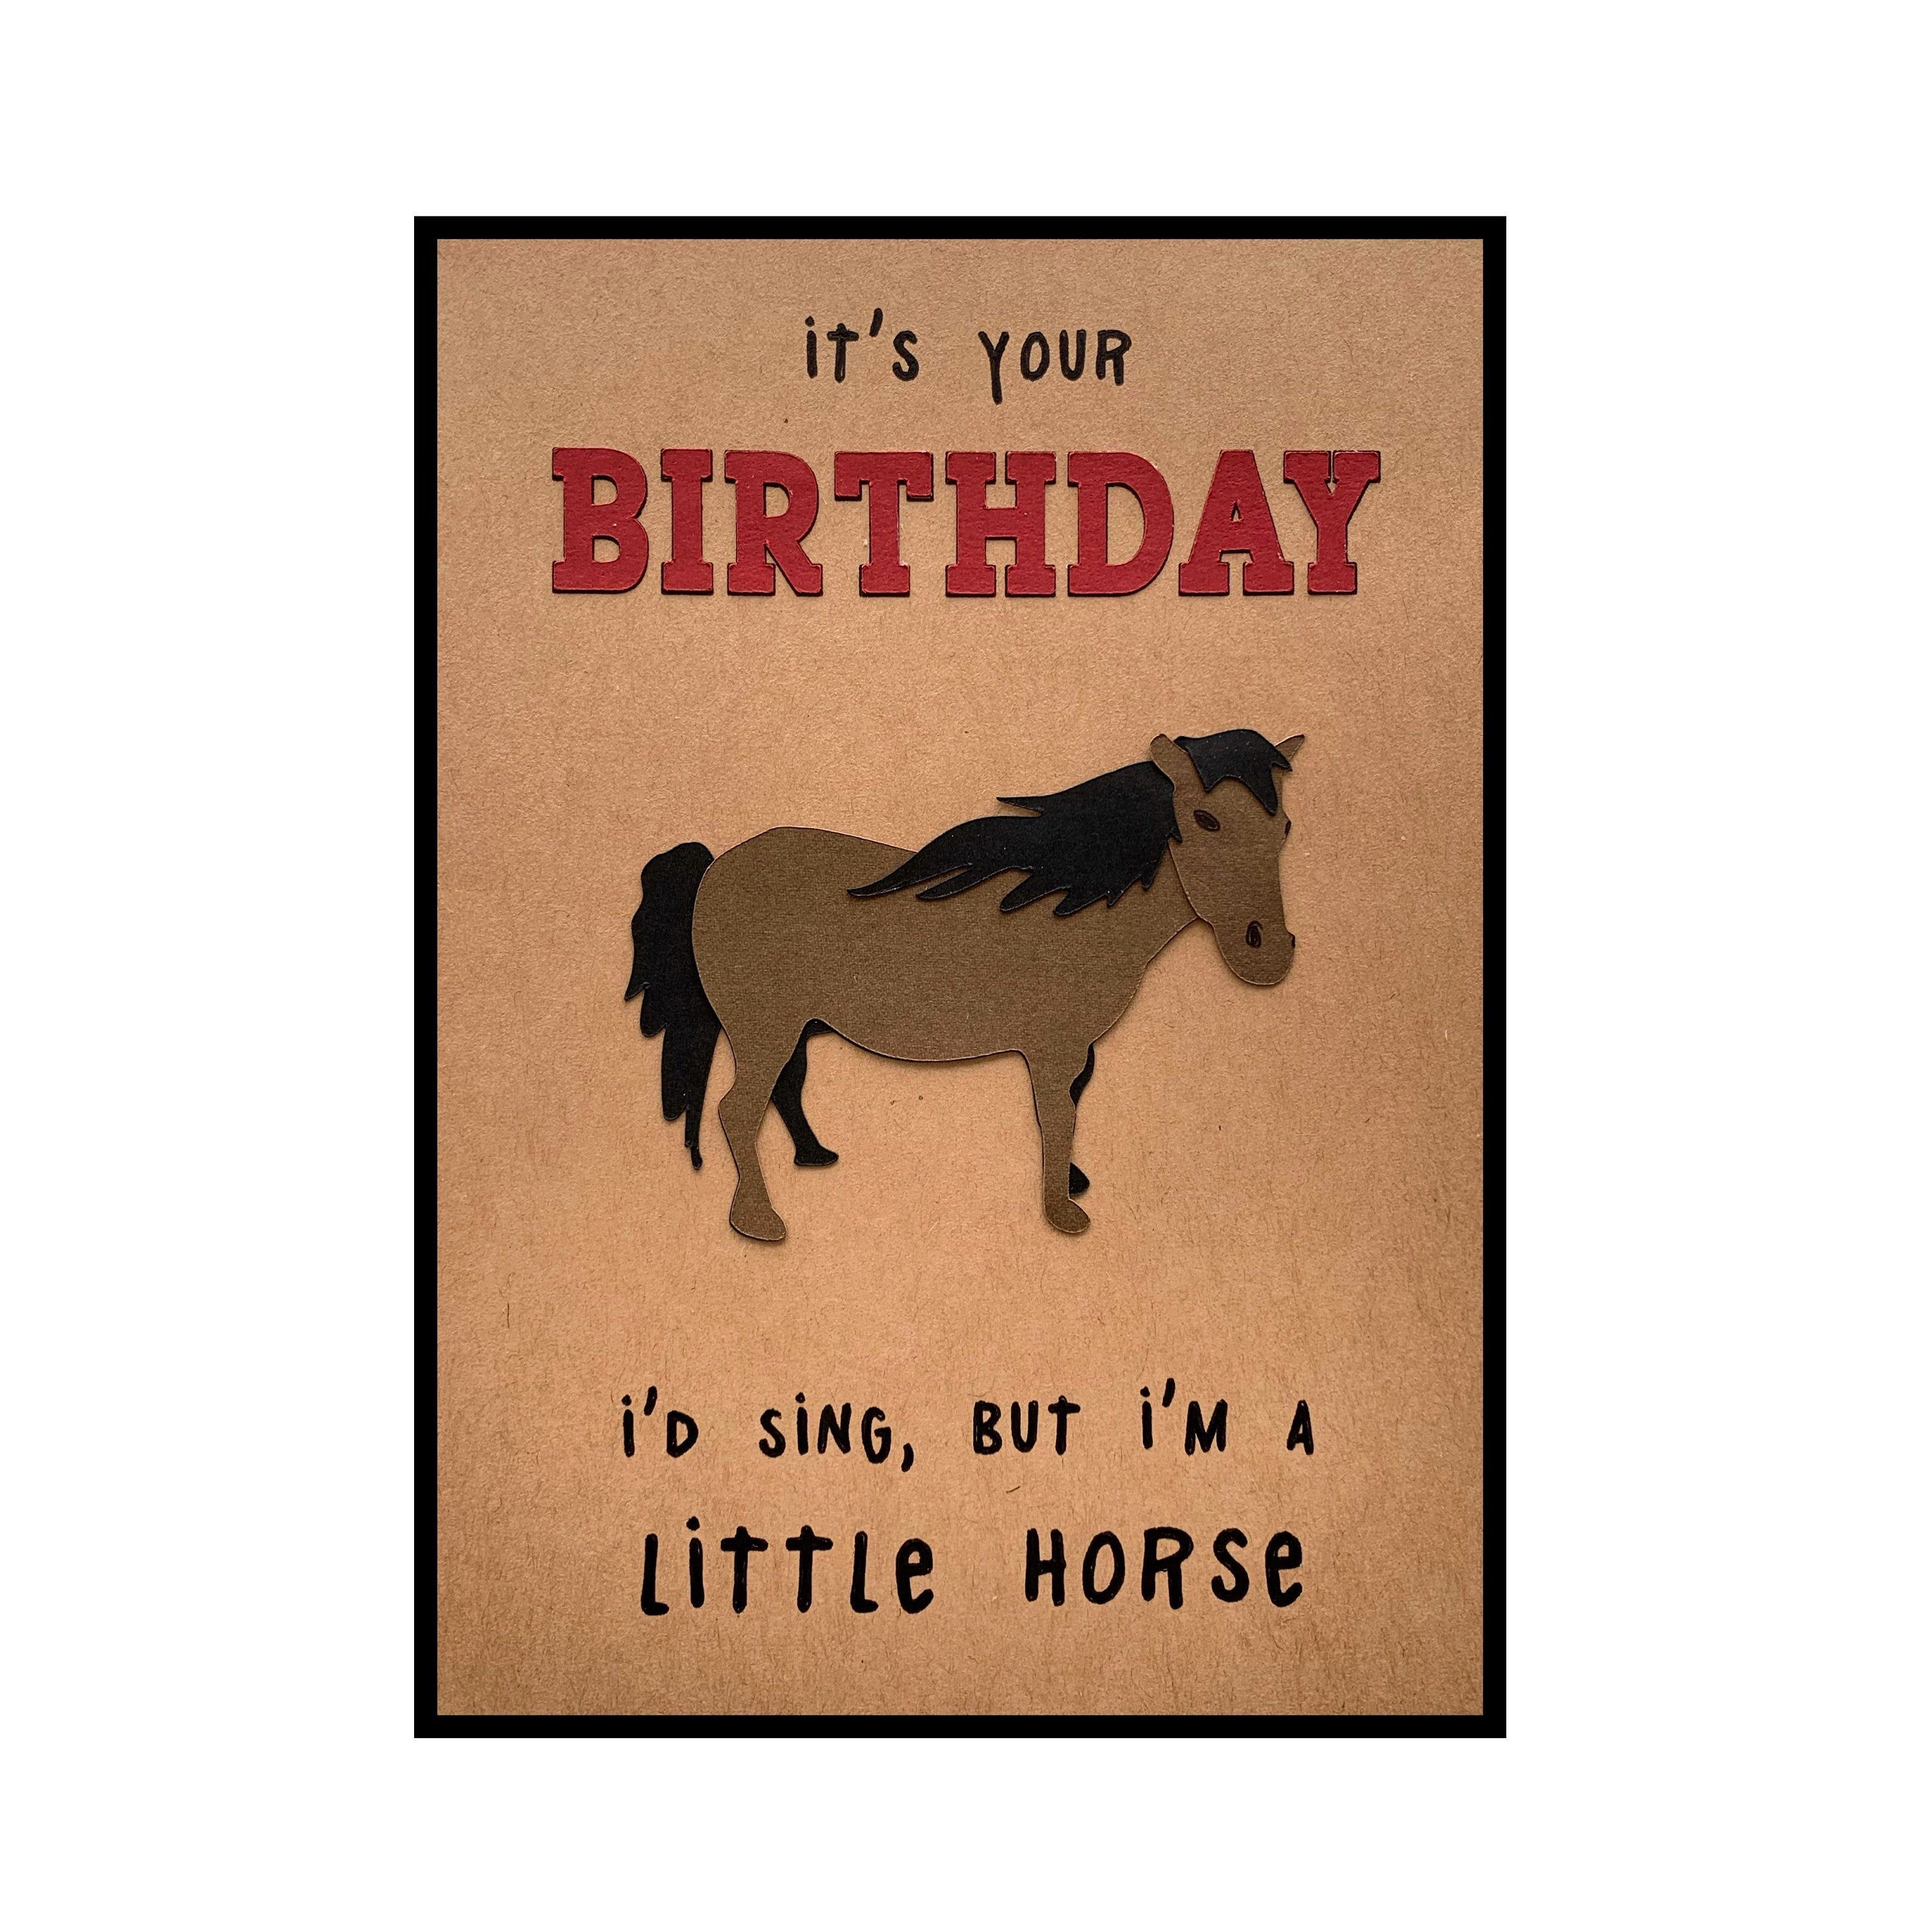 Funny Birthday Card Pun I D Sing But I M A Little Horse By Biburypaper On Etsy Https Www Etsy Co Funny Birthday Cards Birthday Card Puns Birthday Humor